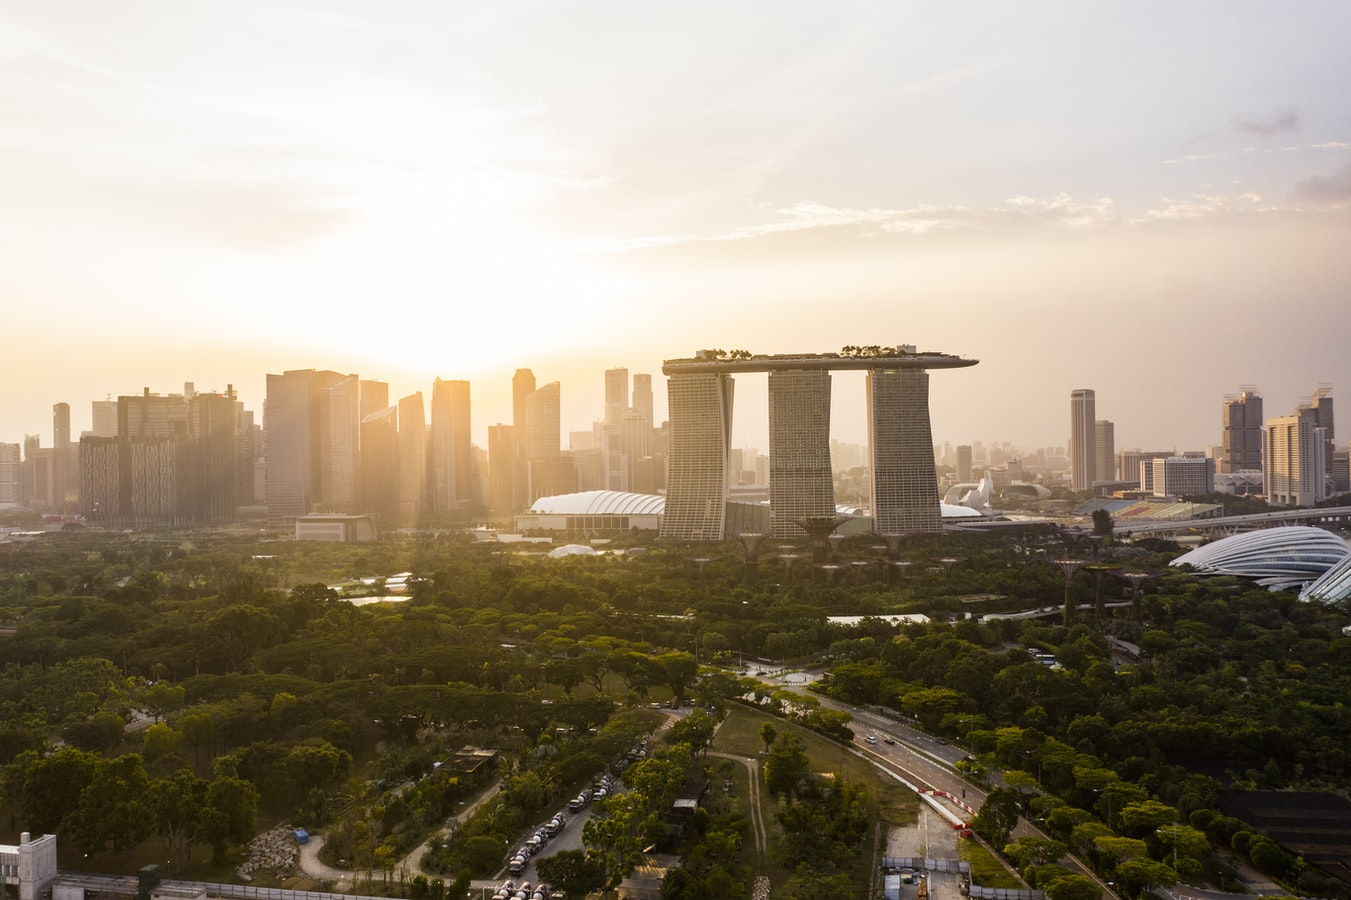 A bird's eye view of the Singapore city skyline in the evening, with Marina Bay Sands in clear view.